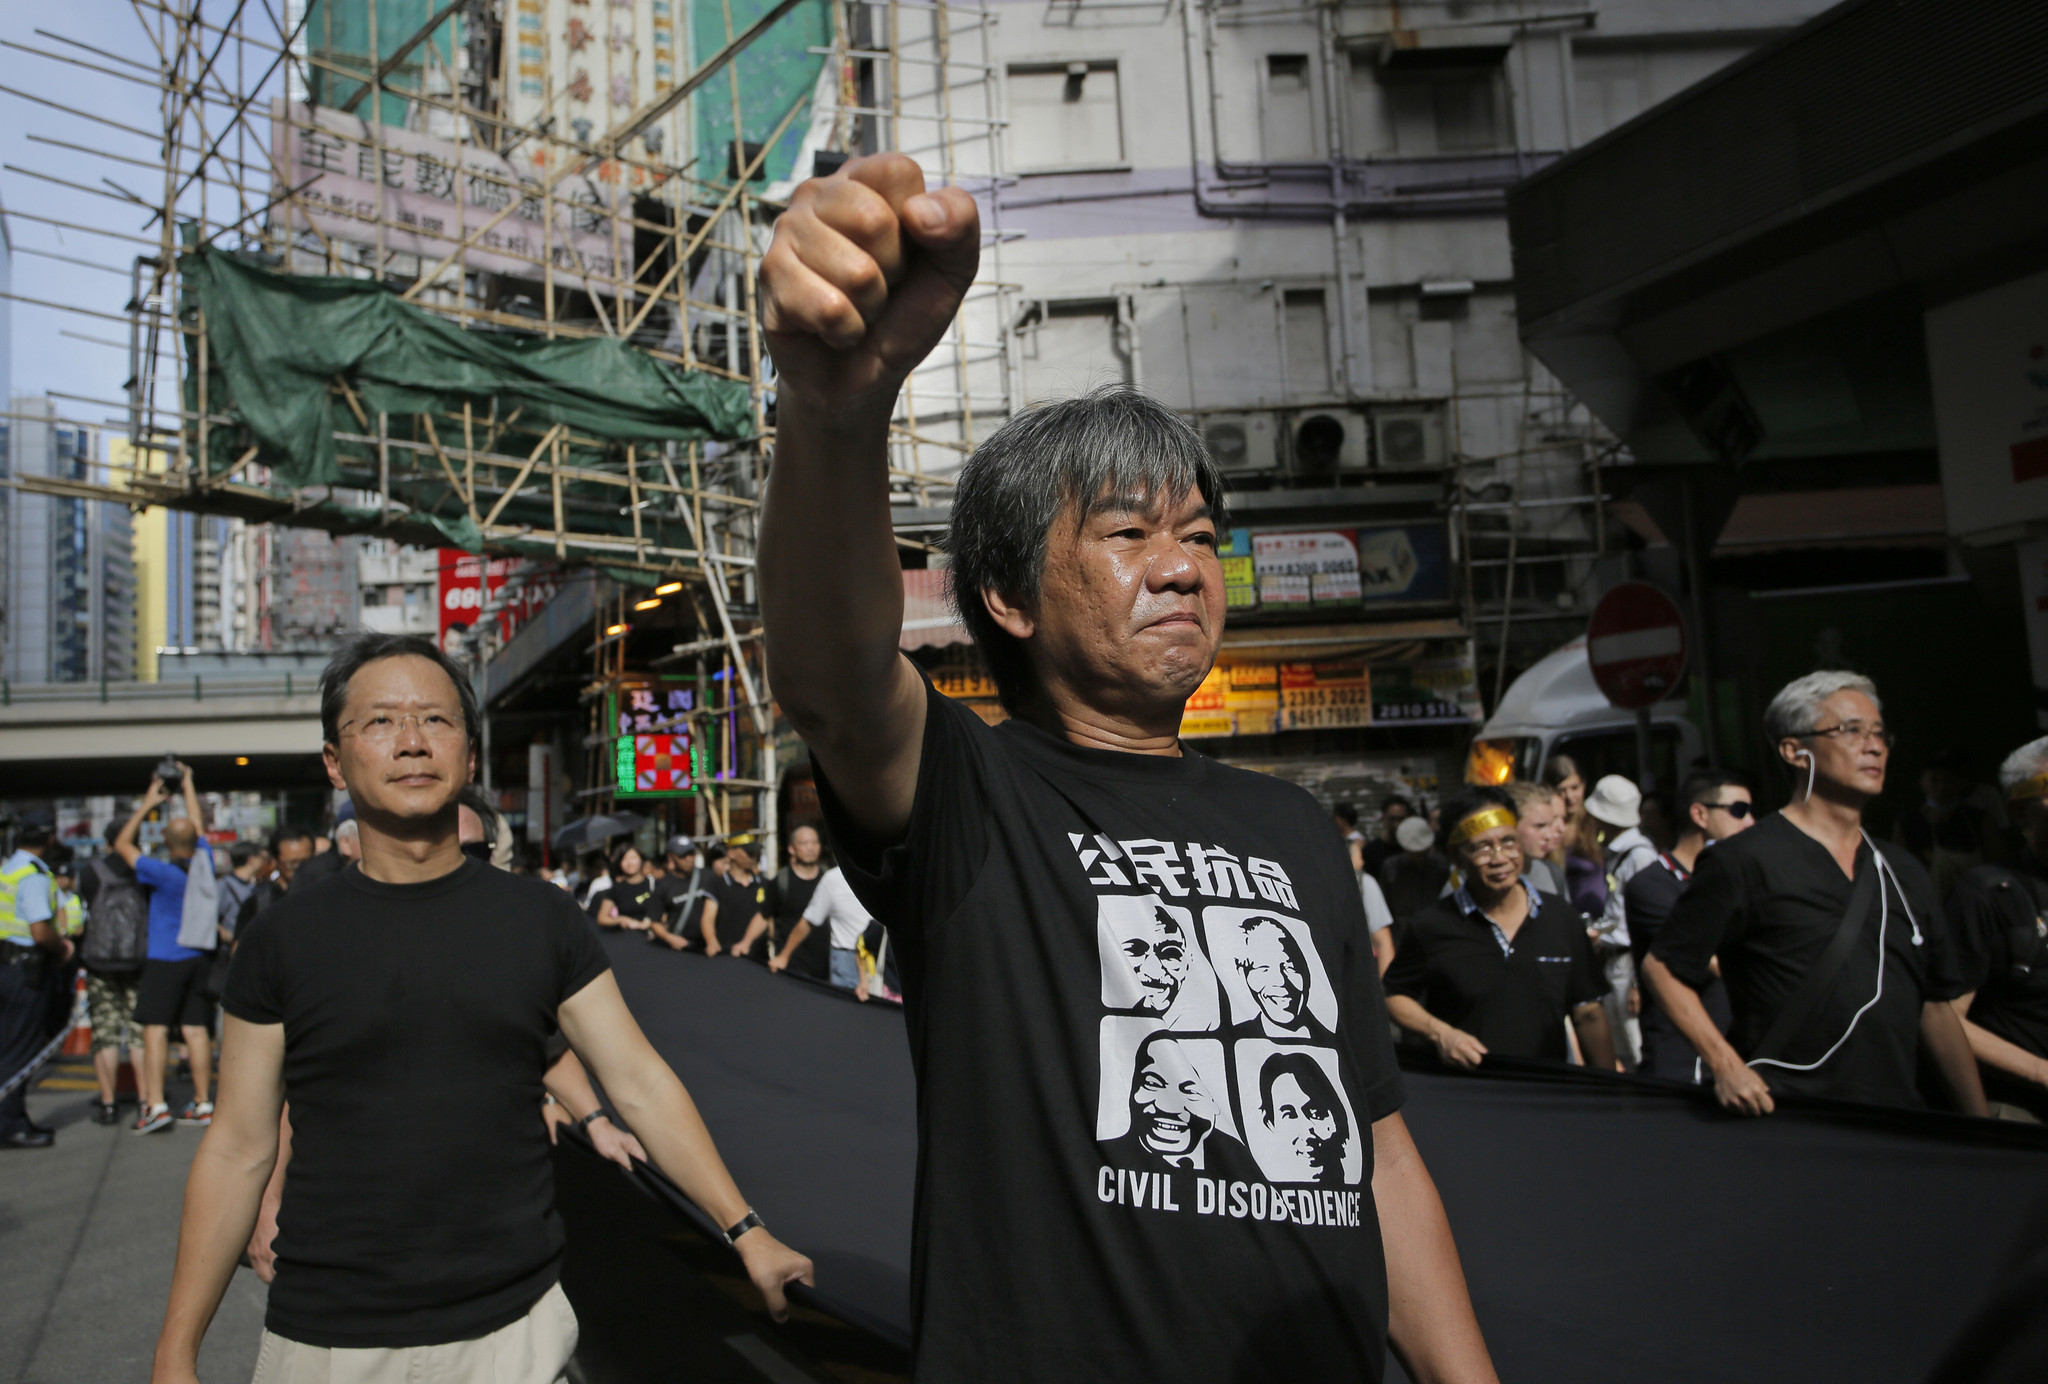 Prominent Hong Kong activist says protesters need to unify, strategize